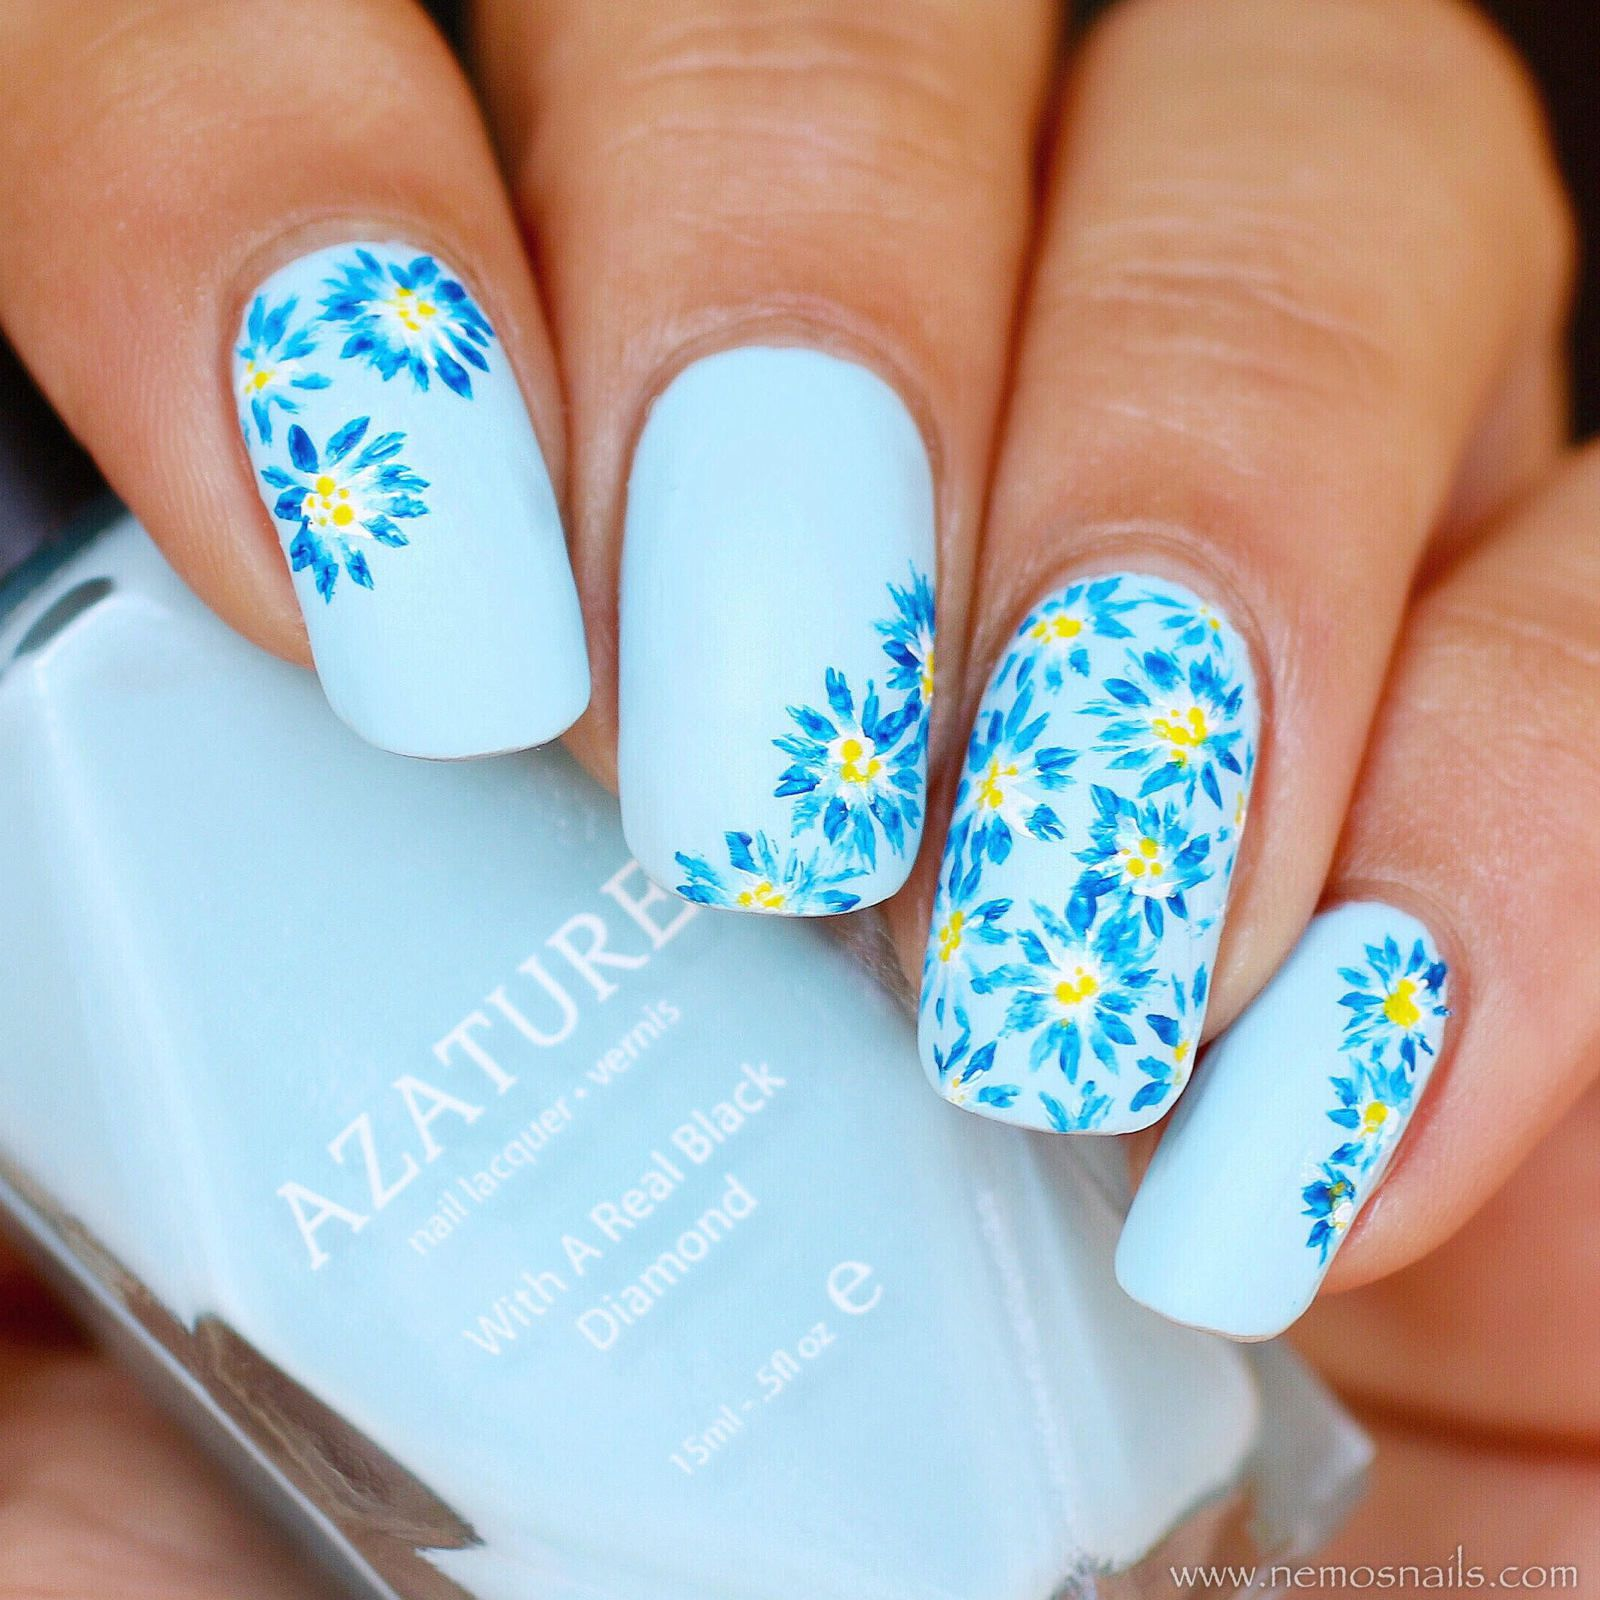 Guest Post: Floral Nail Art from Atima aka Nails by Nemo